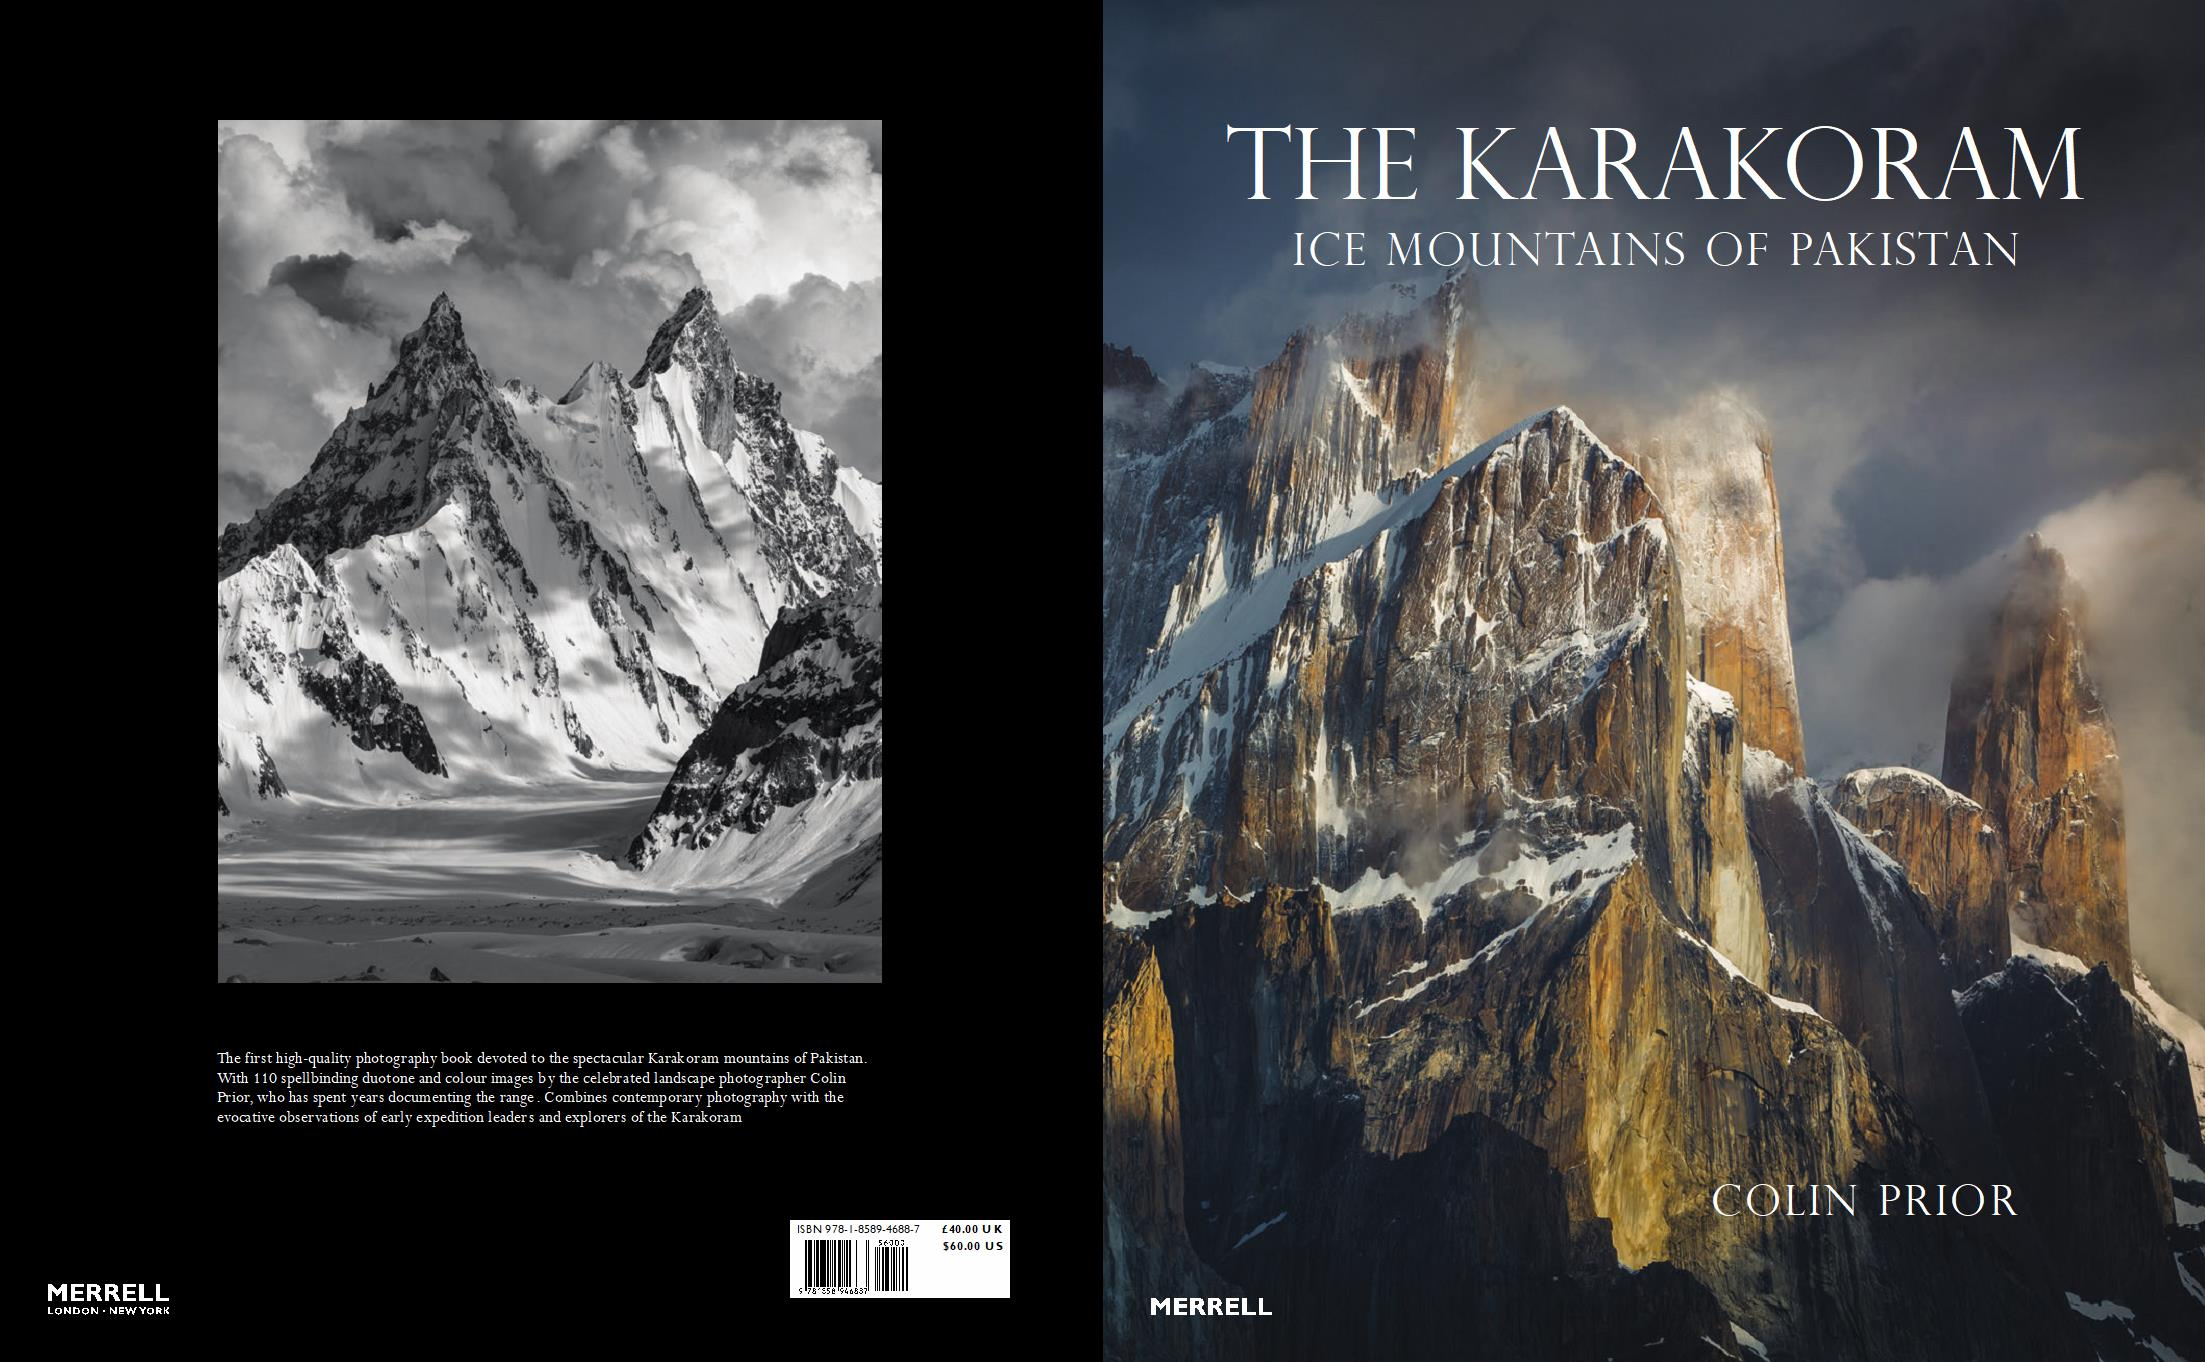 Colin Prior - The Karakoram